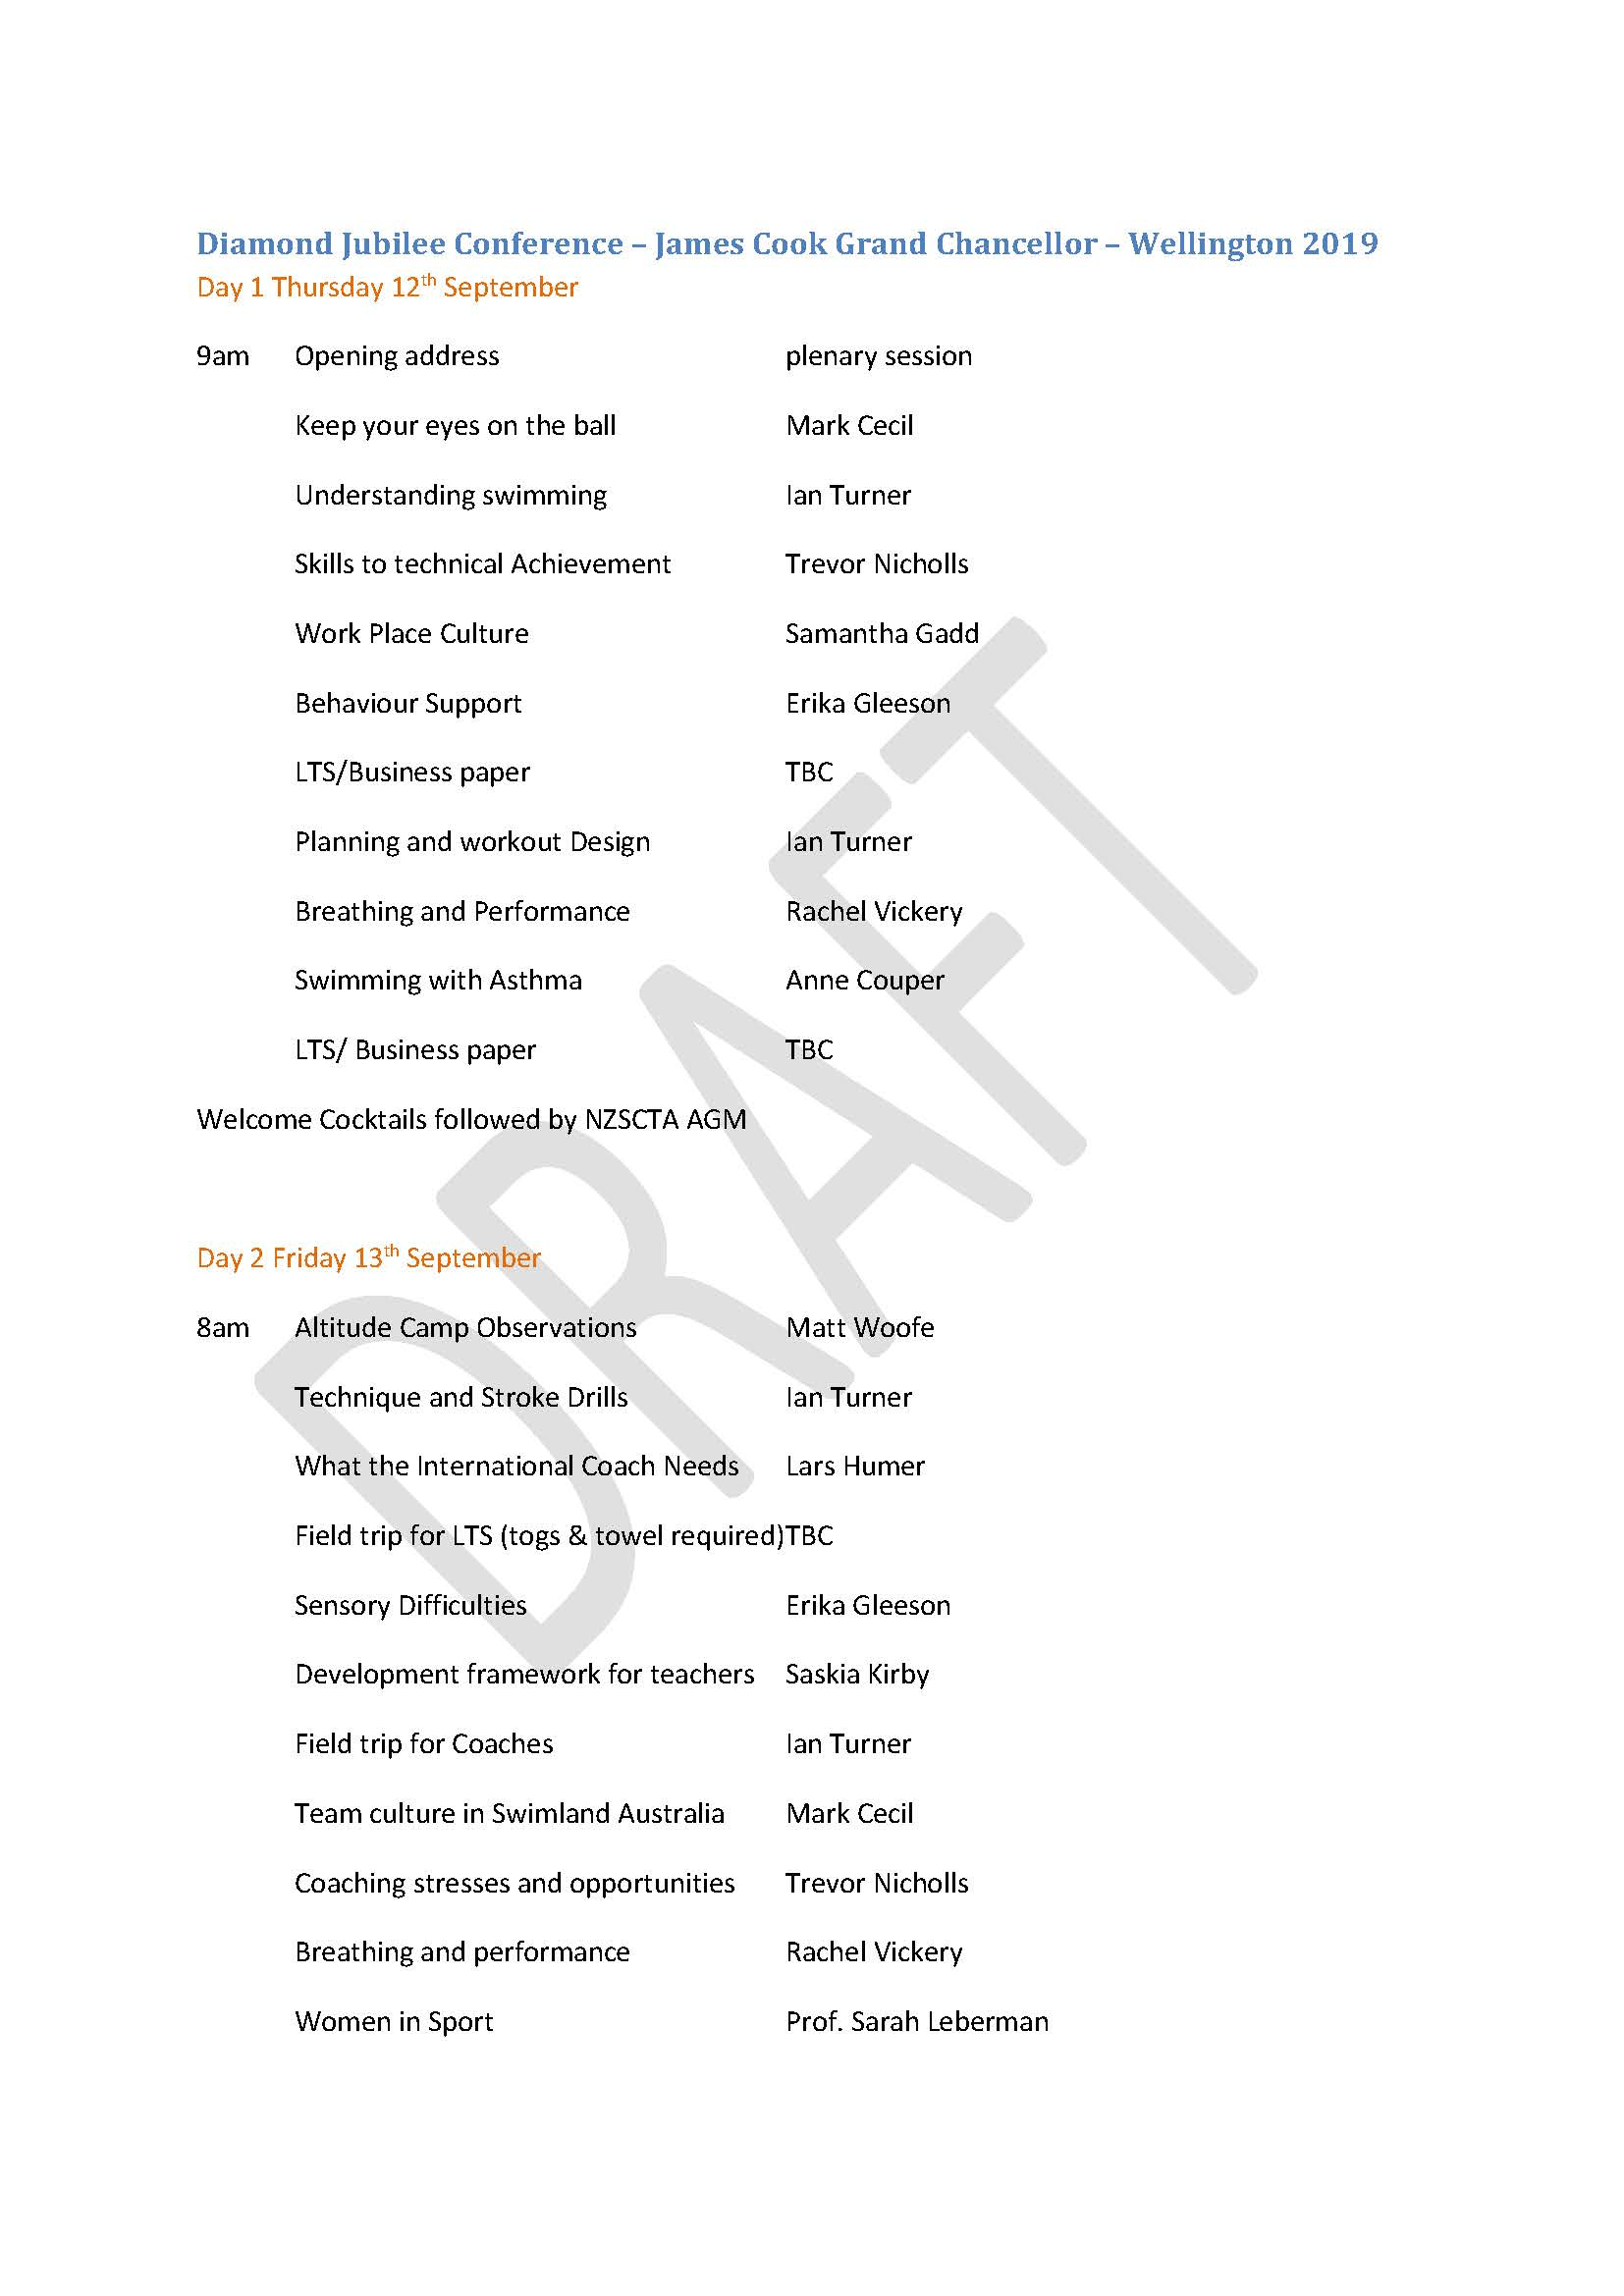 2019 Conference Programme - Draft1_Page_1.jpg